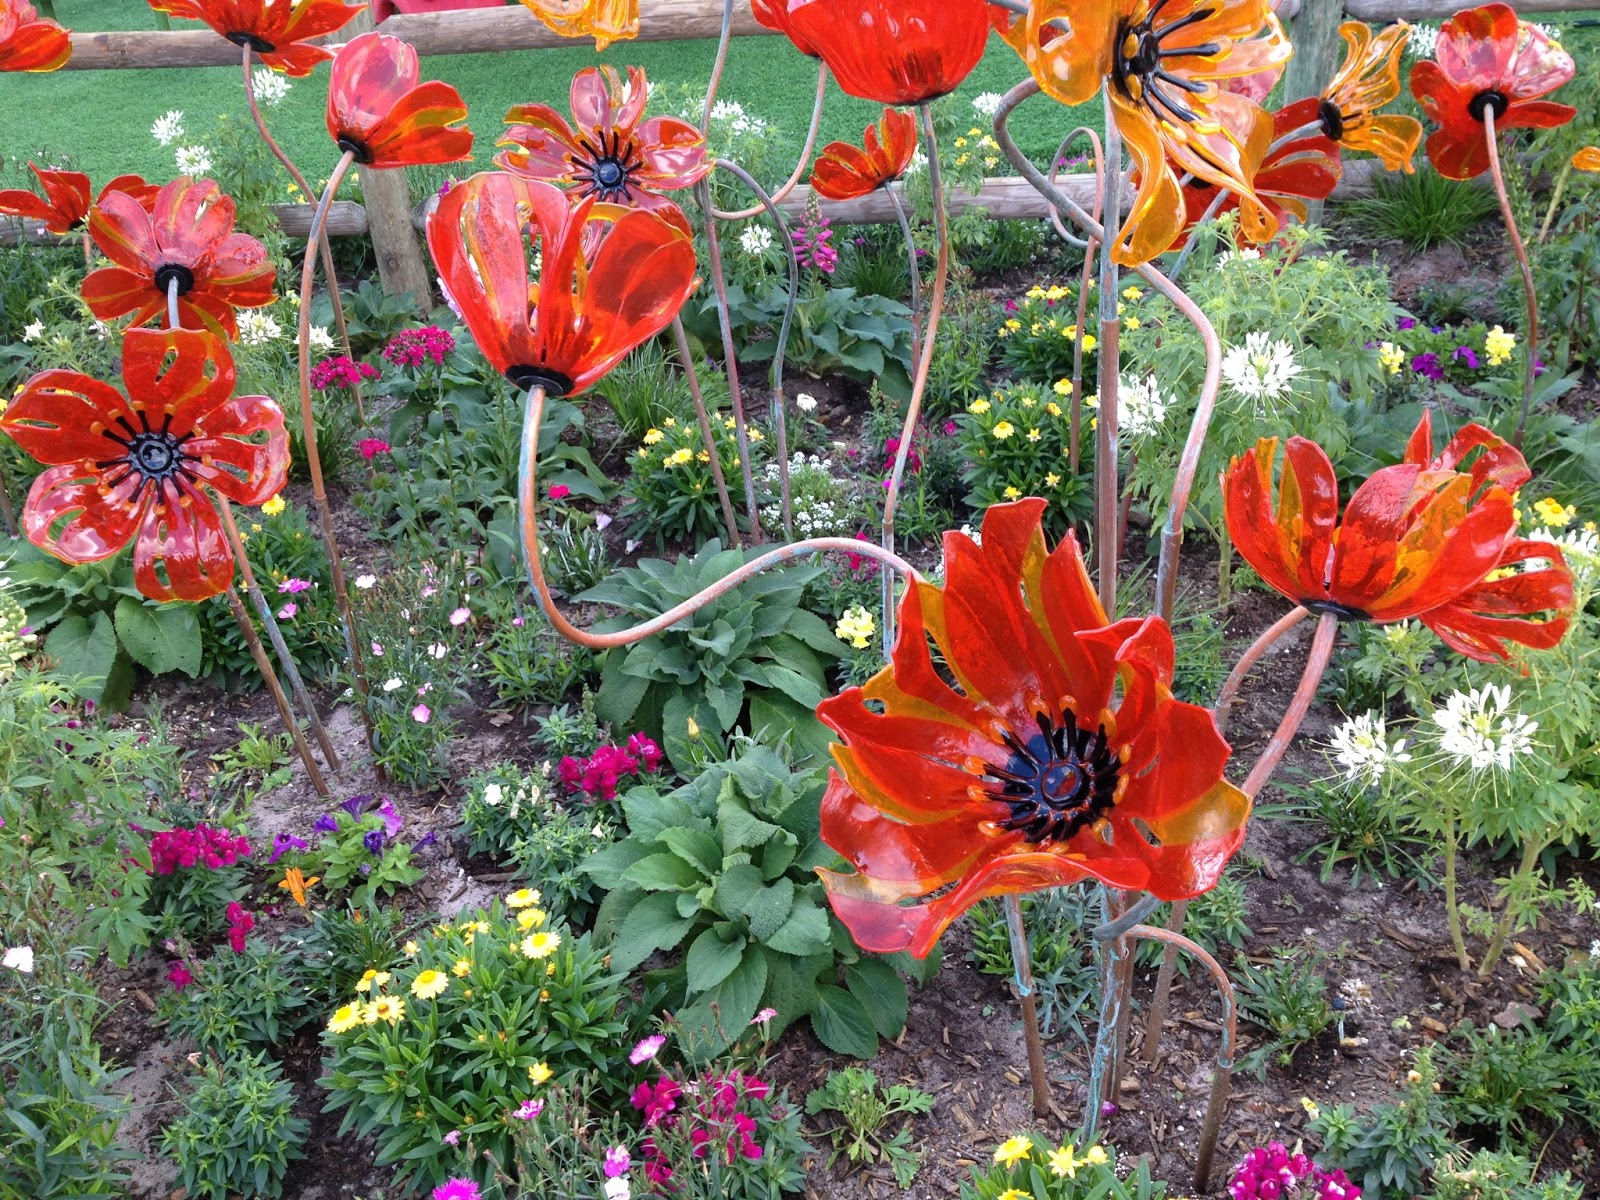 Wordless Wednesday: Flowers And Gardens